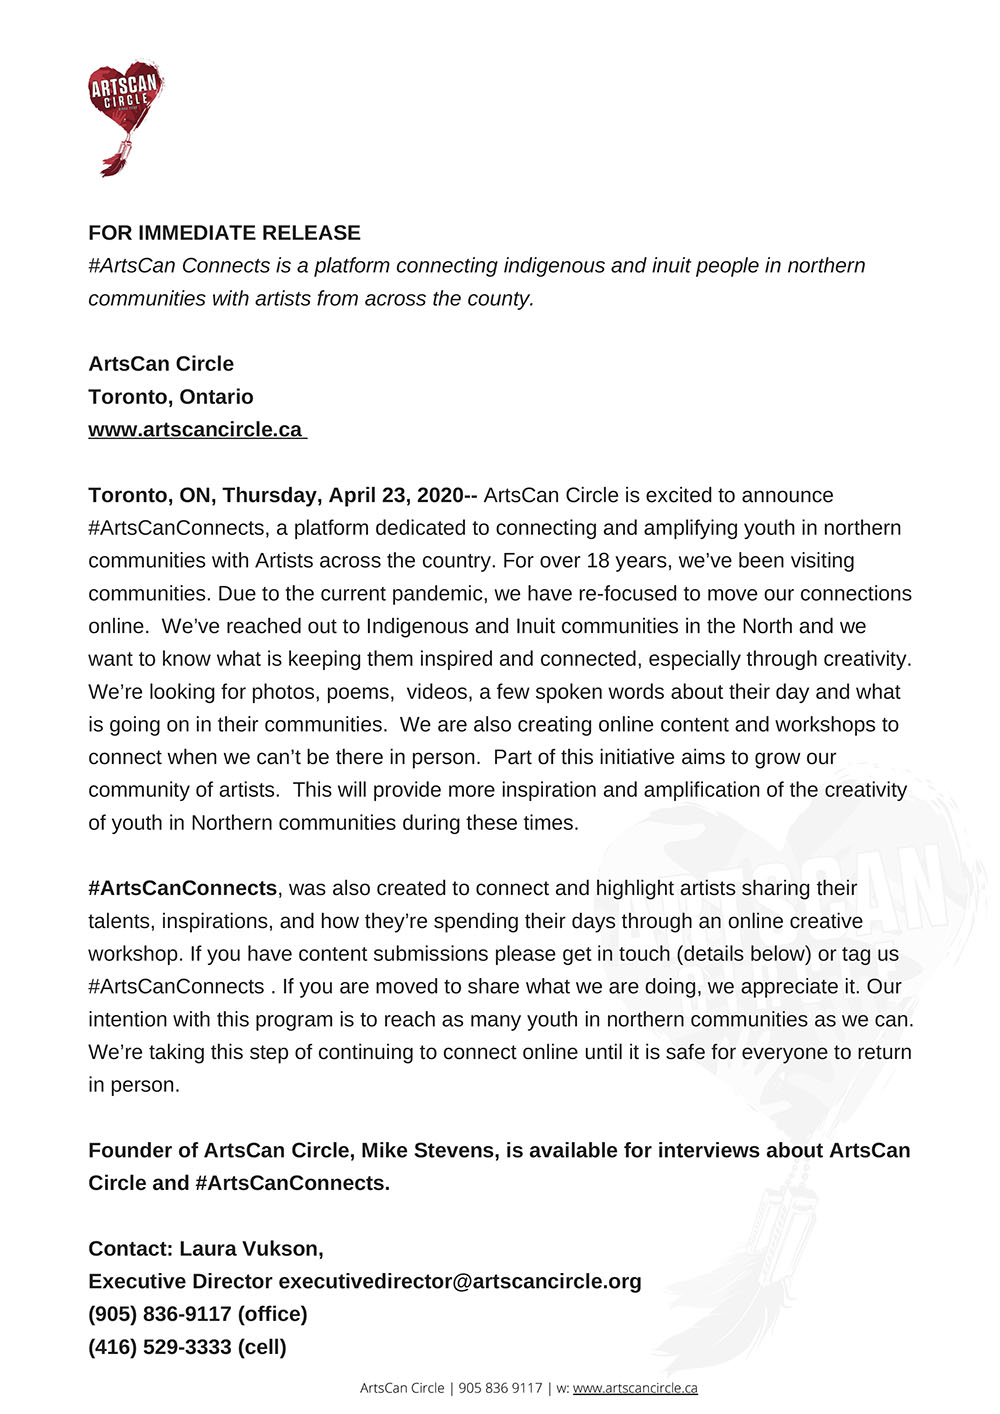 Press Release from Artscan Circle